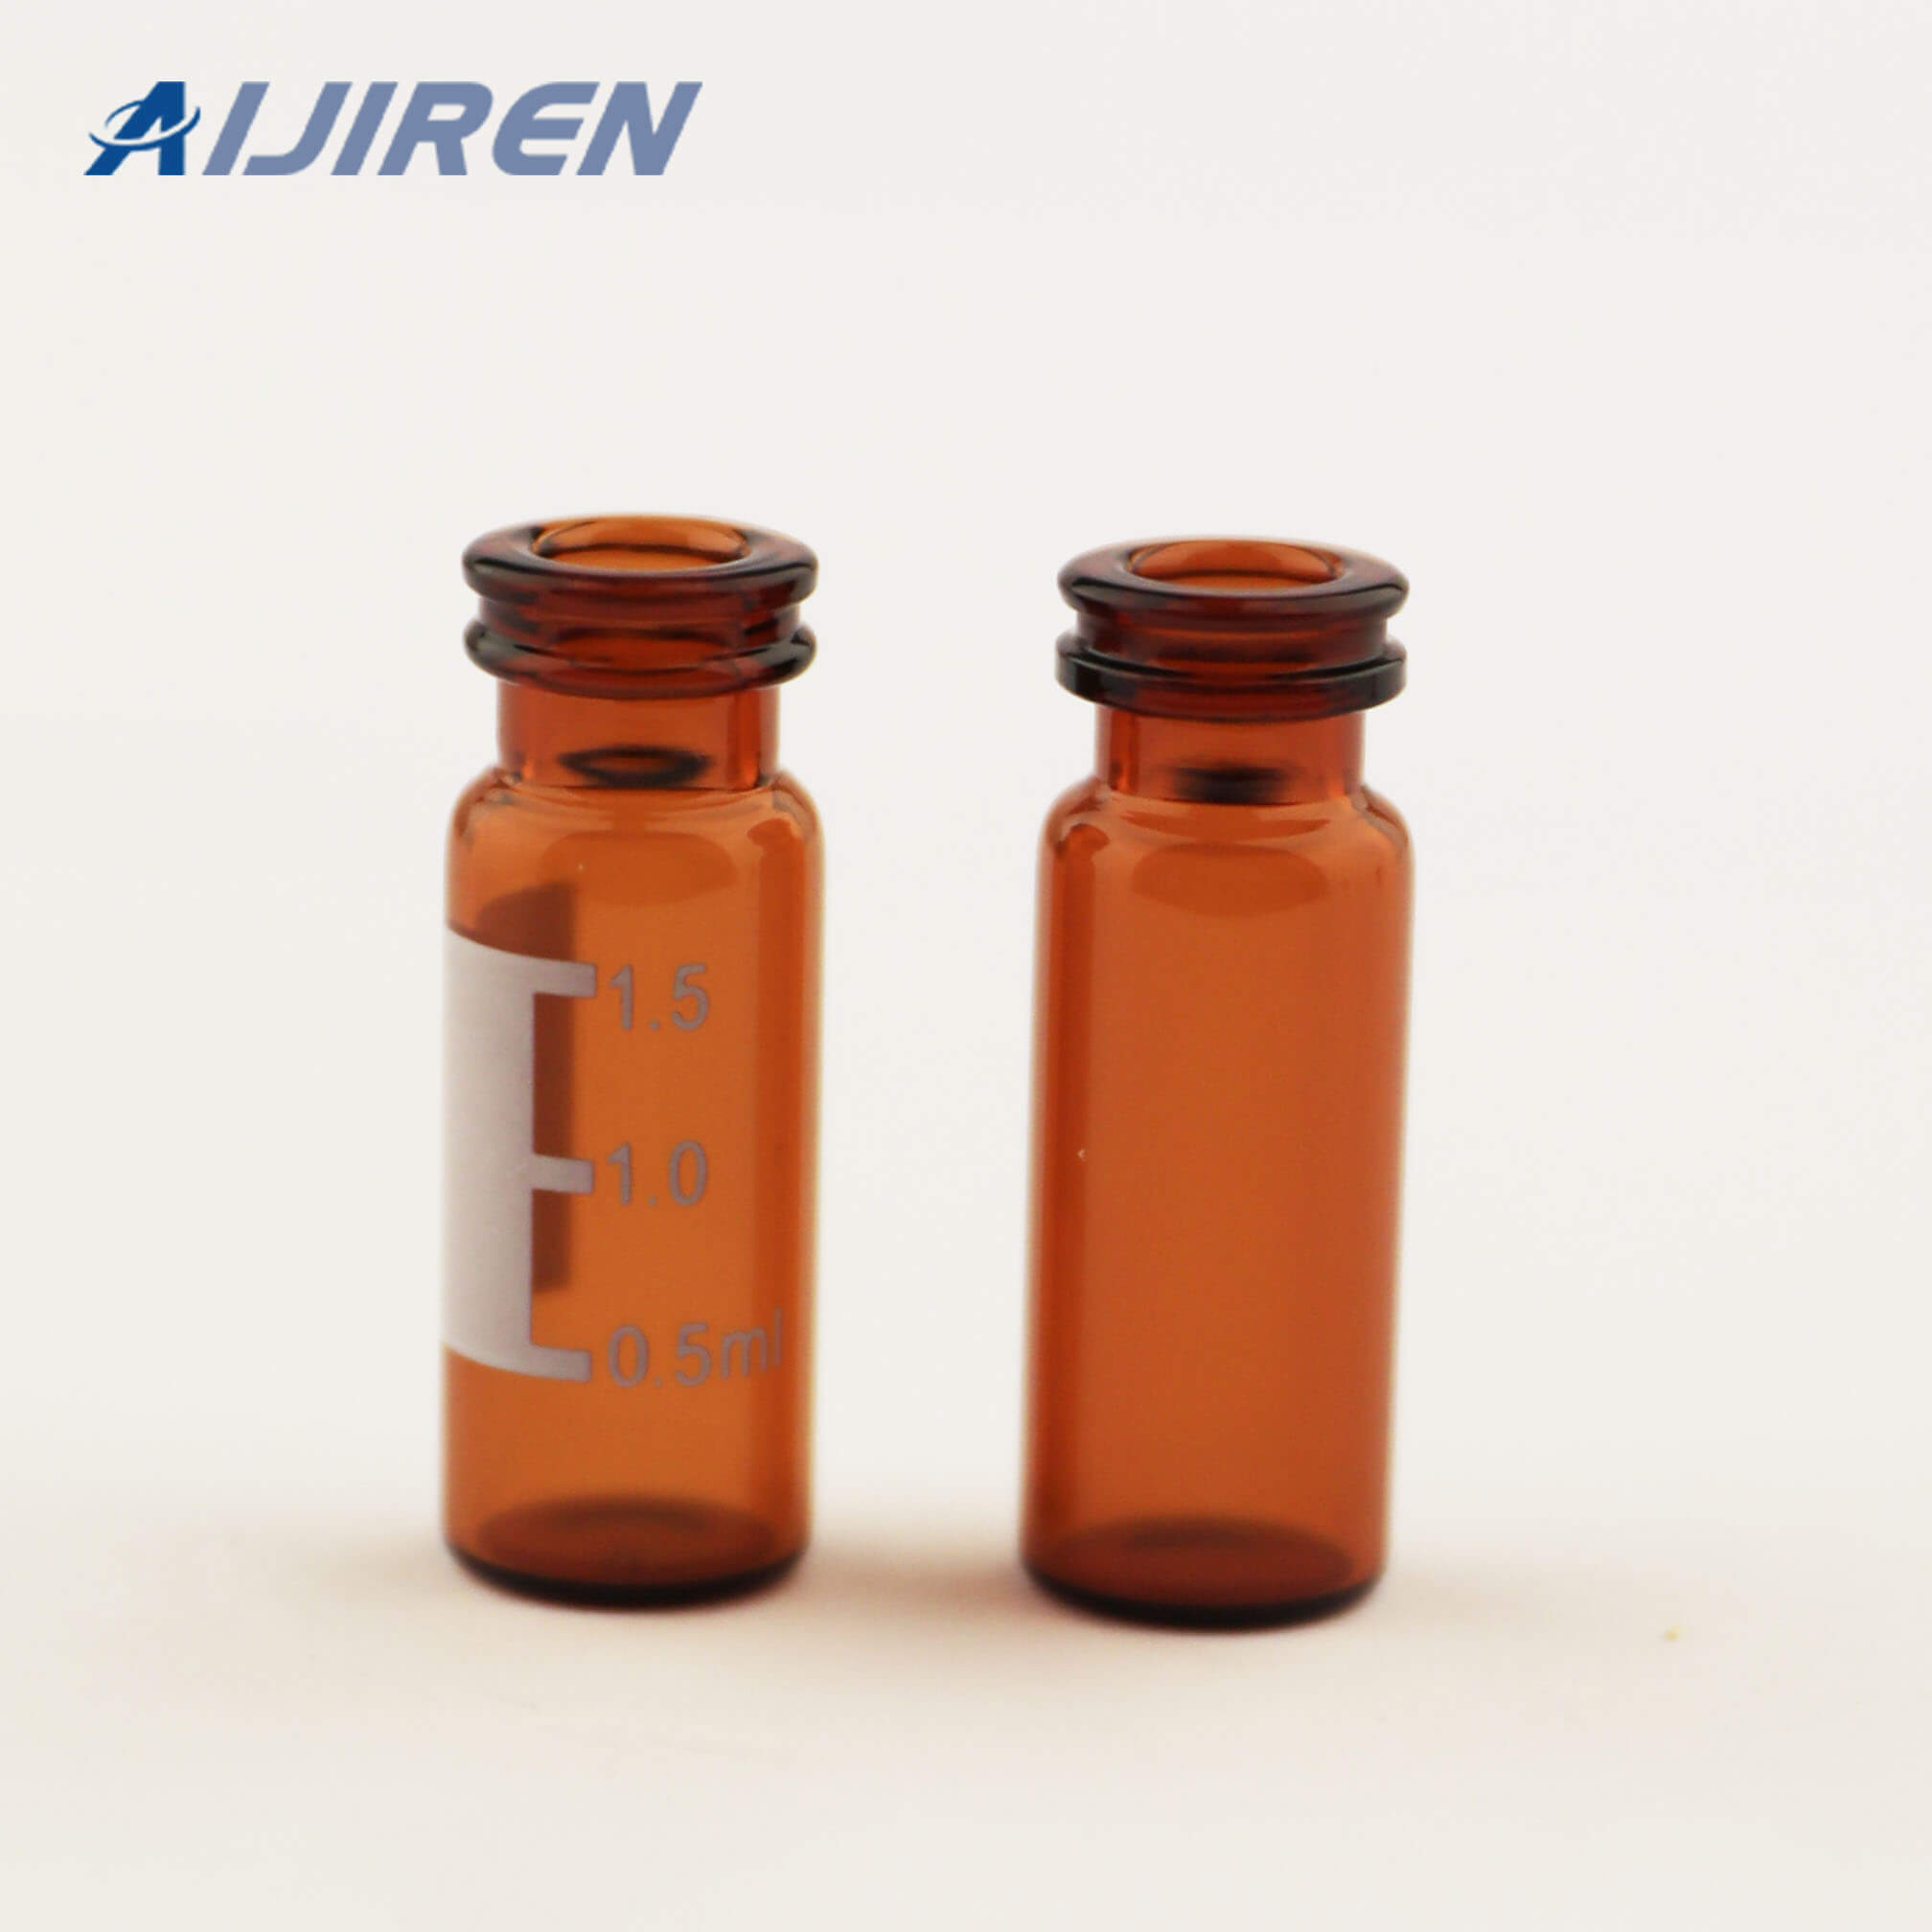 Amber Snap Top Glass Vial for WATERS